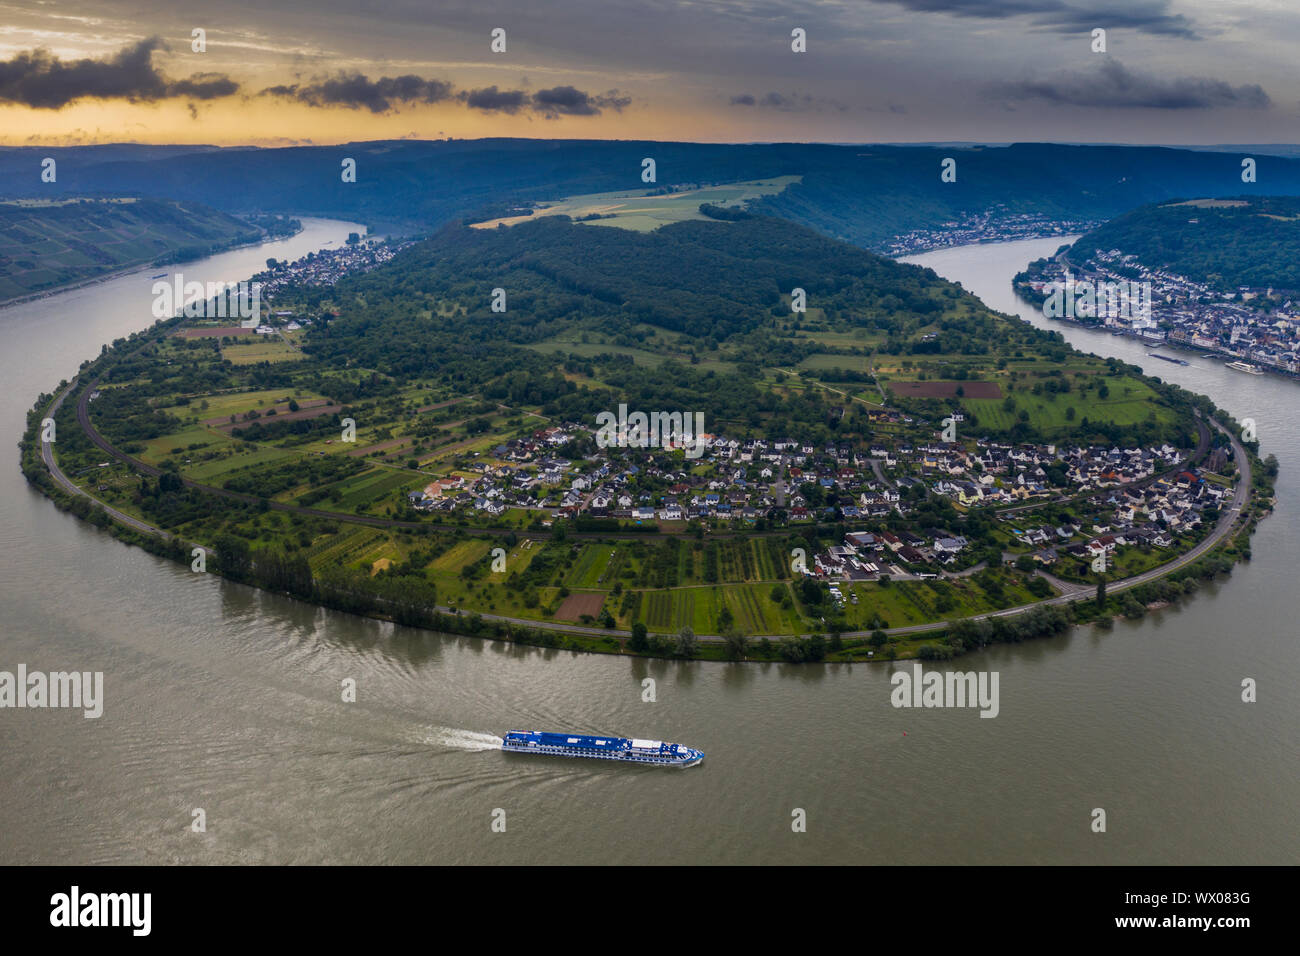 View from the Gedeonseck down to the Rhine bend, UNESCO World Heritage Site, Middle Rhine valley, Rhineland-Palatinate, Germany, Europe Stock Photo